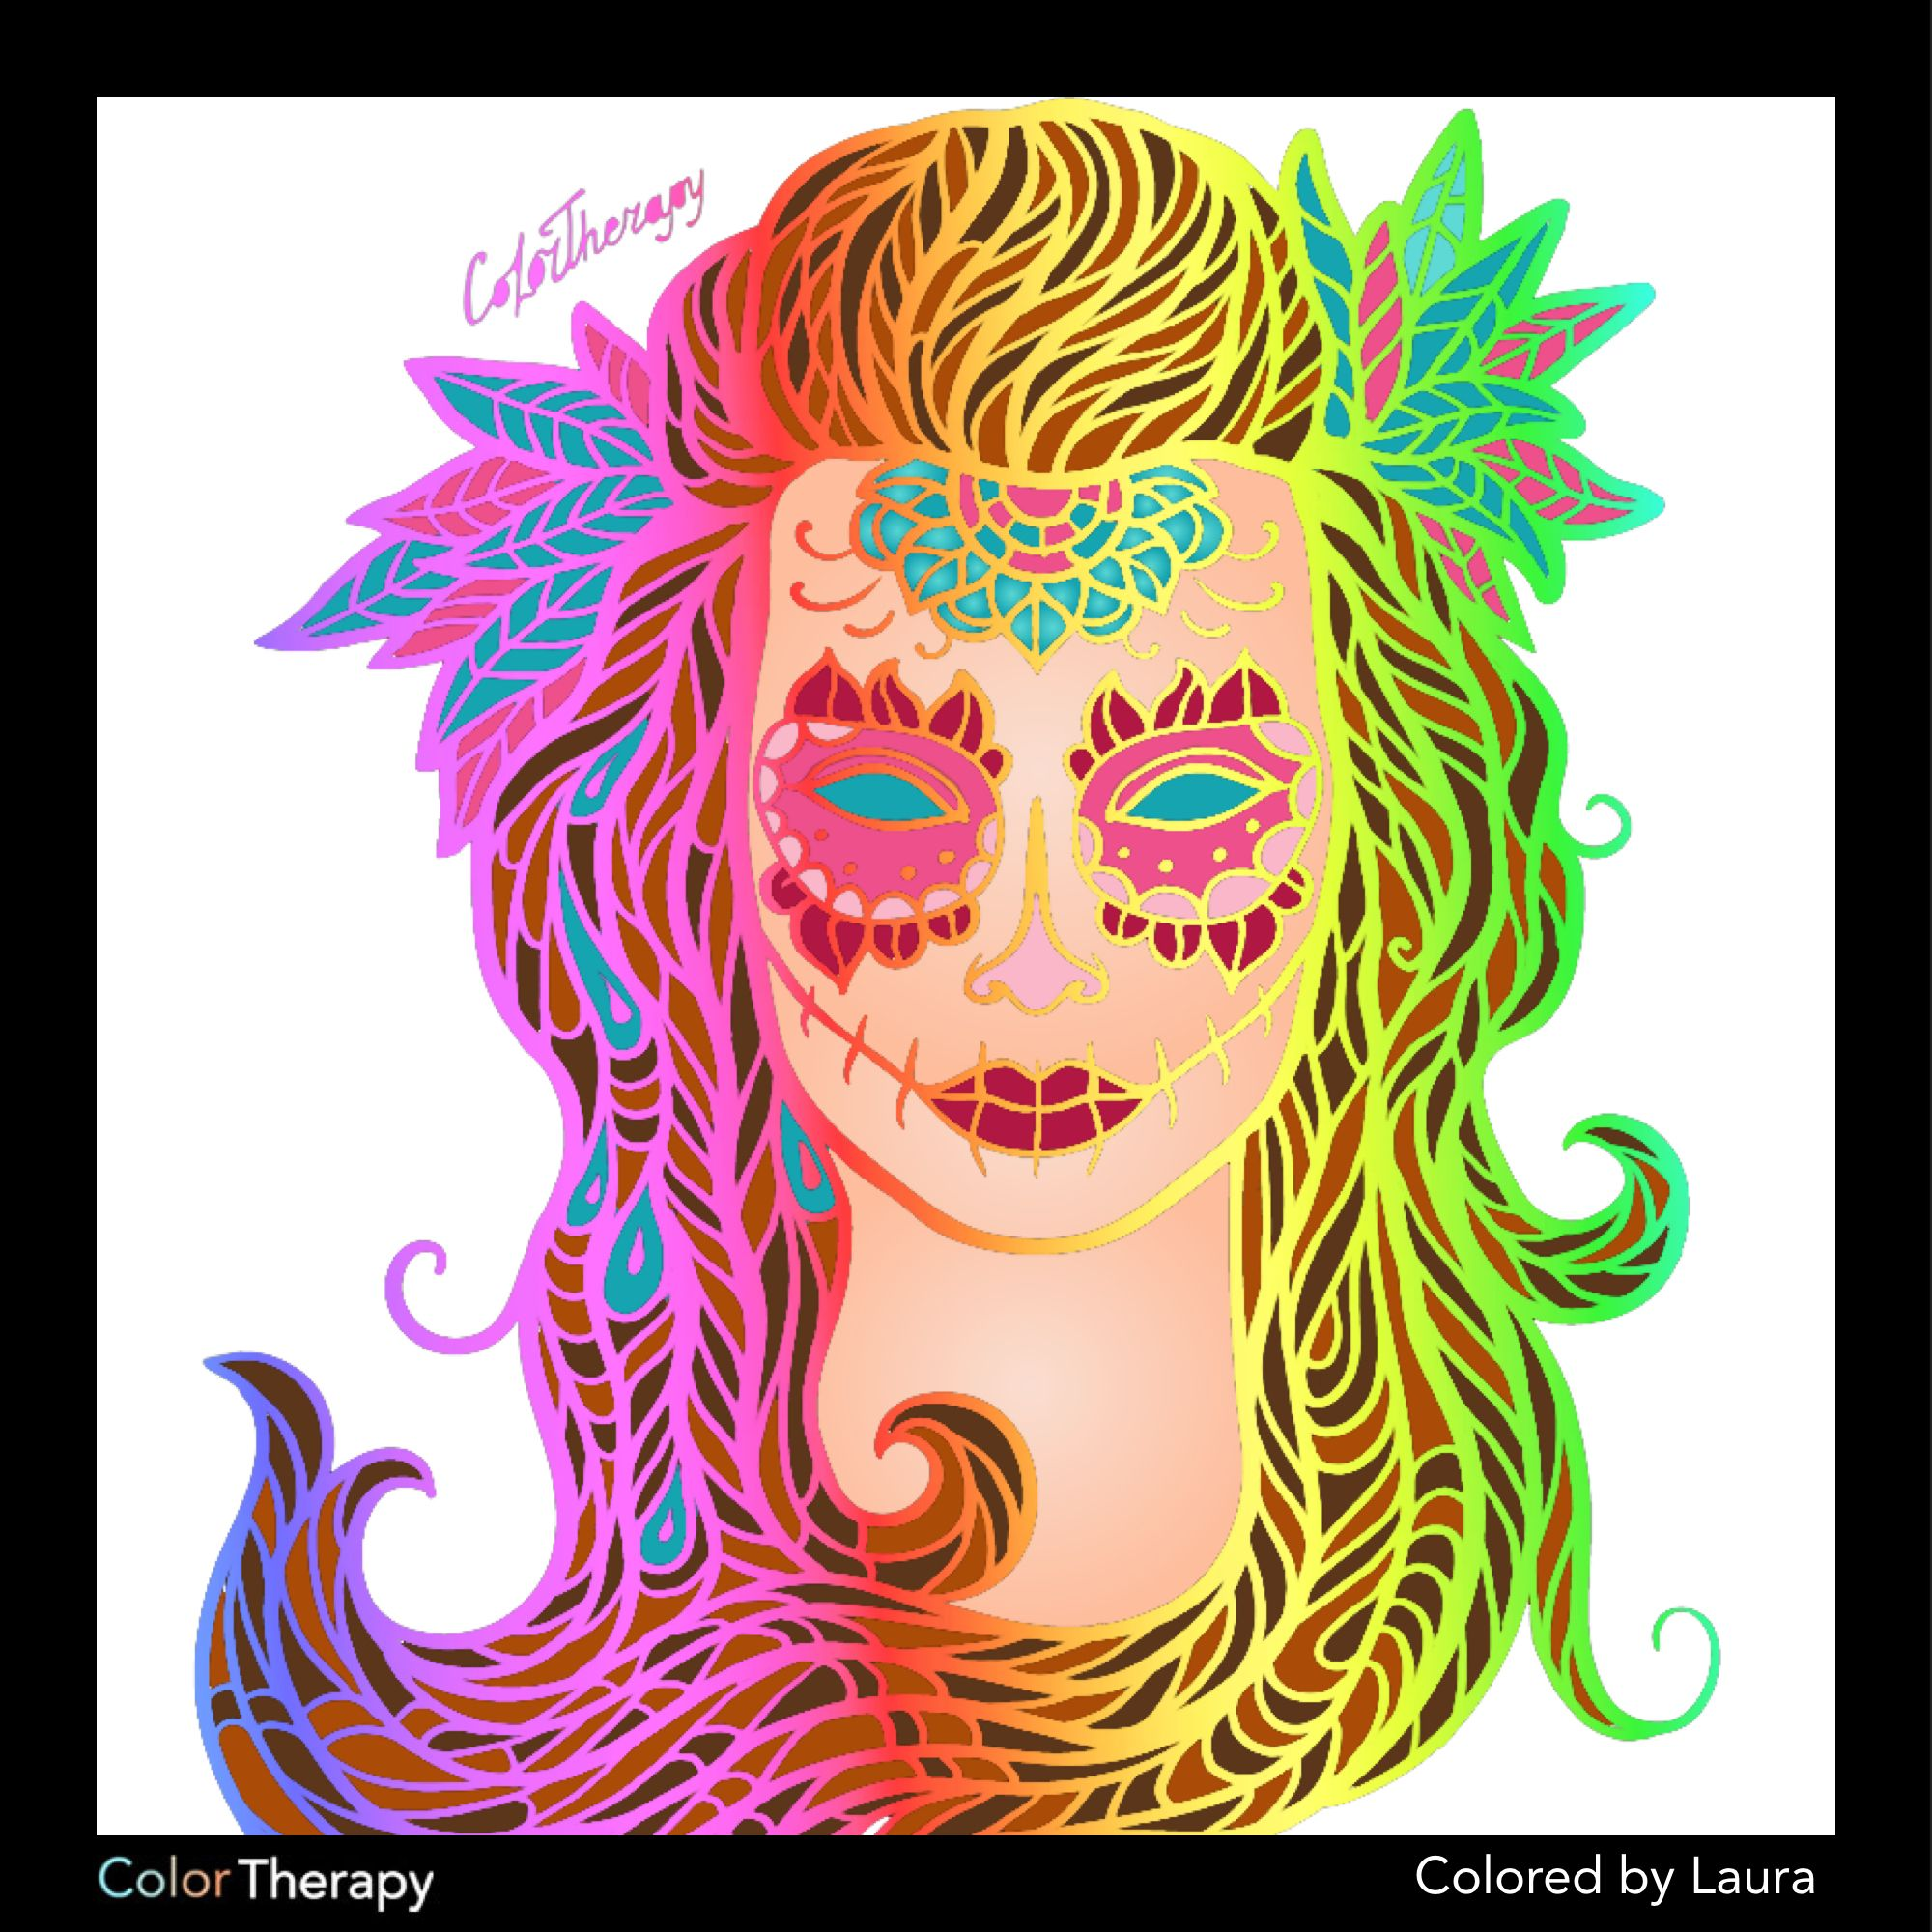 Art color therapy - I Colored This Myself Using Color Therapy App It Was So Fun And Relaxing